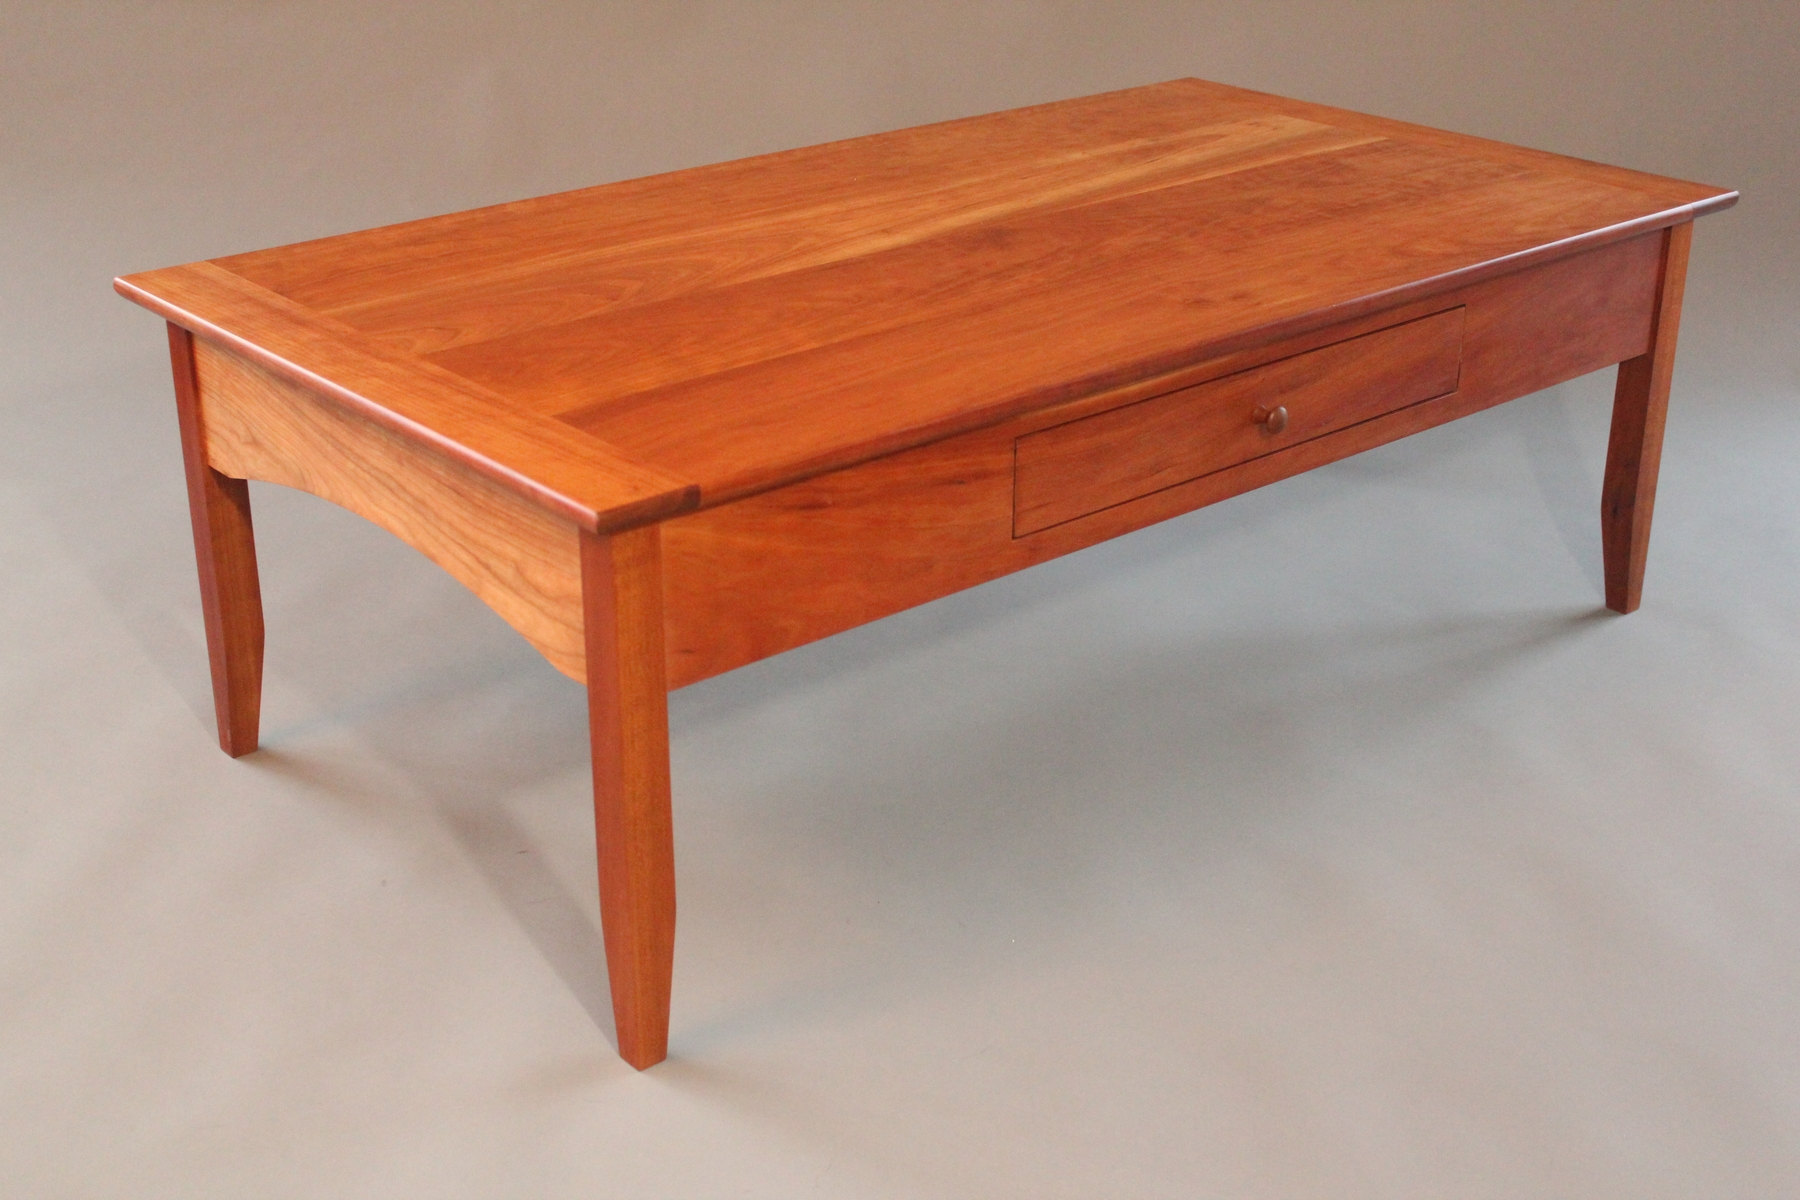 coffee tables ideas best cherry table set solid brown furniture drawers singe decorations mini office charm cherries wooden end ashley west elm off email shade floor lamp cute dog